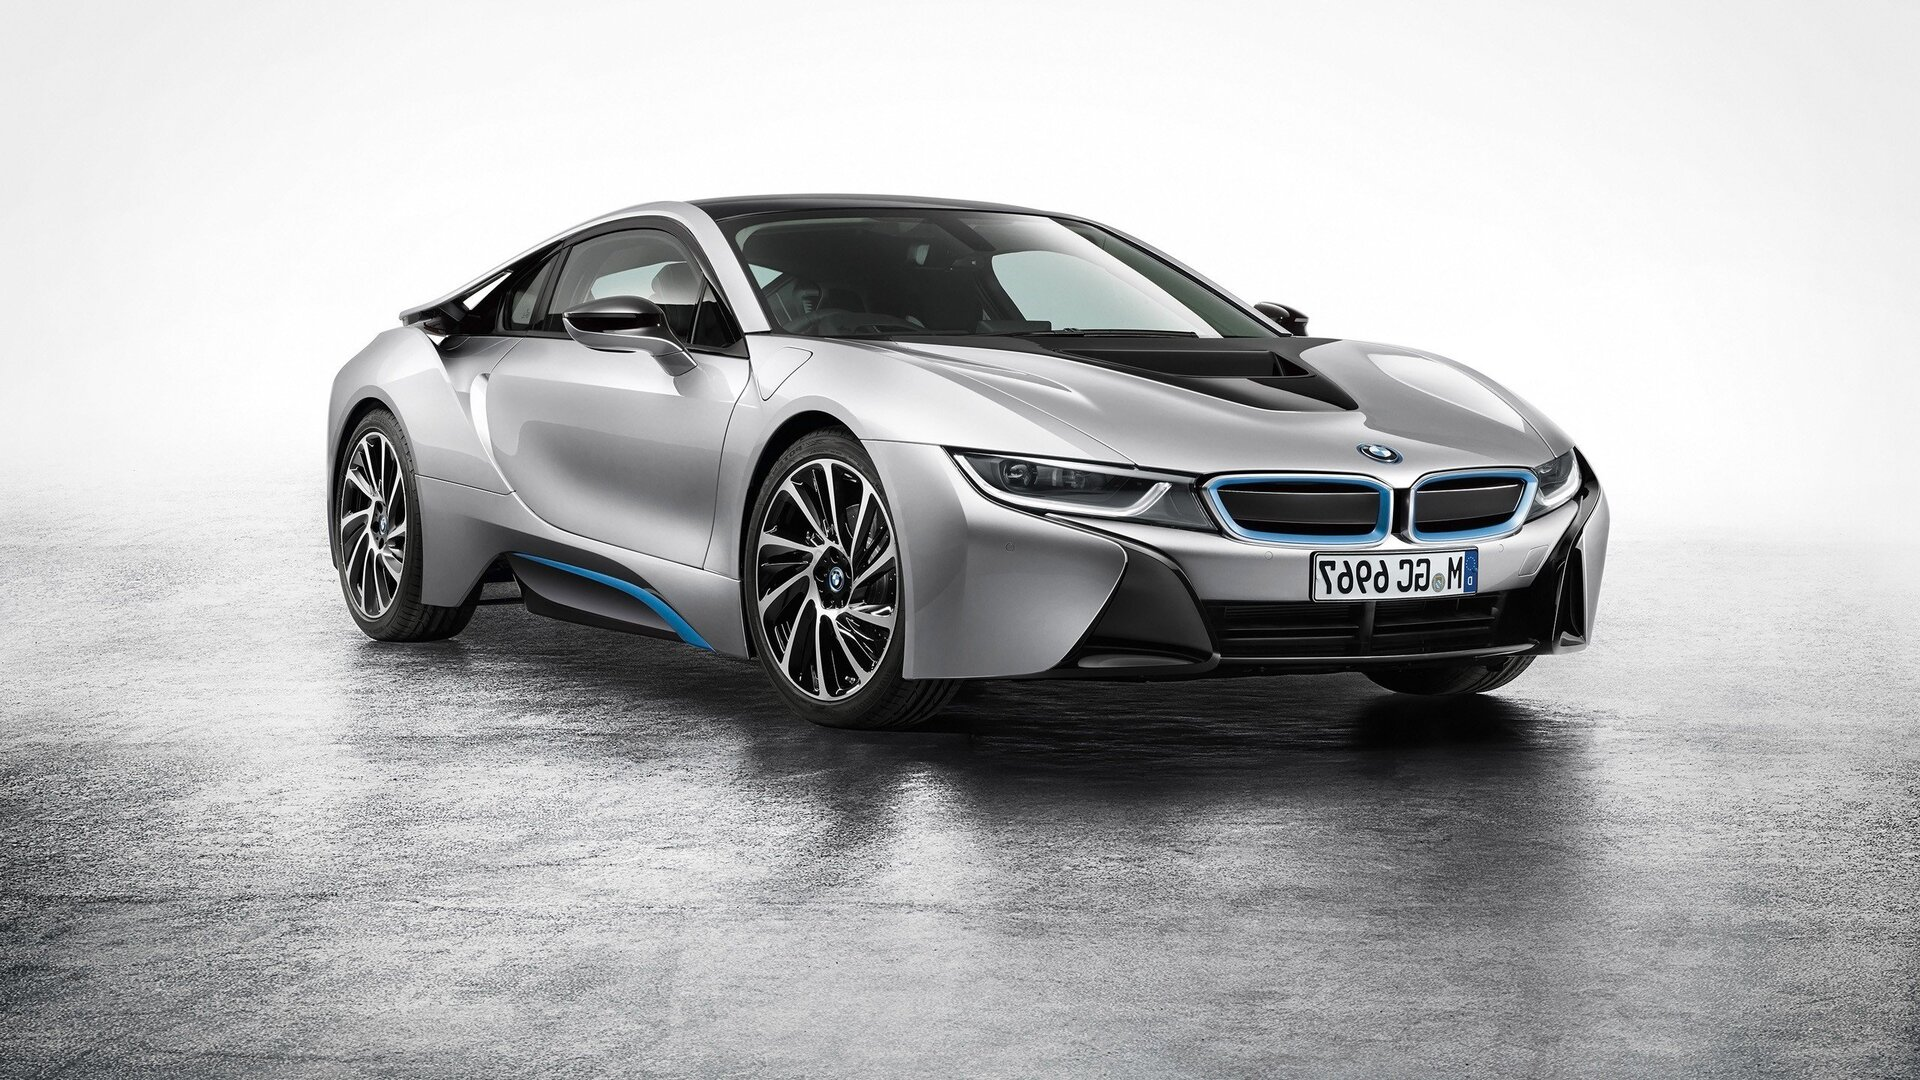 1920x1080 Bmw I8 Pc Laptop Full Hd 1080p Hd 4k Wallpapers Images